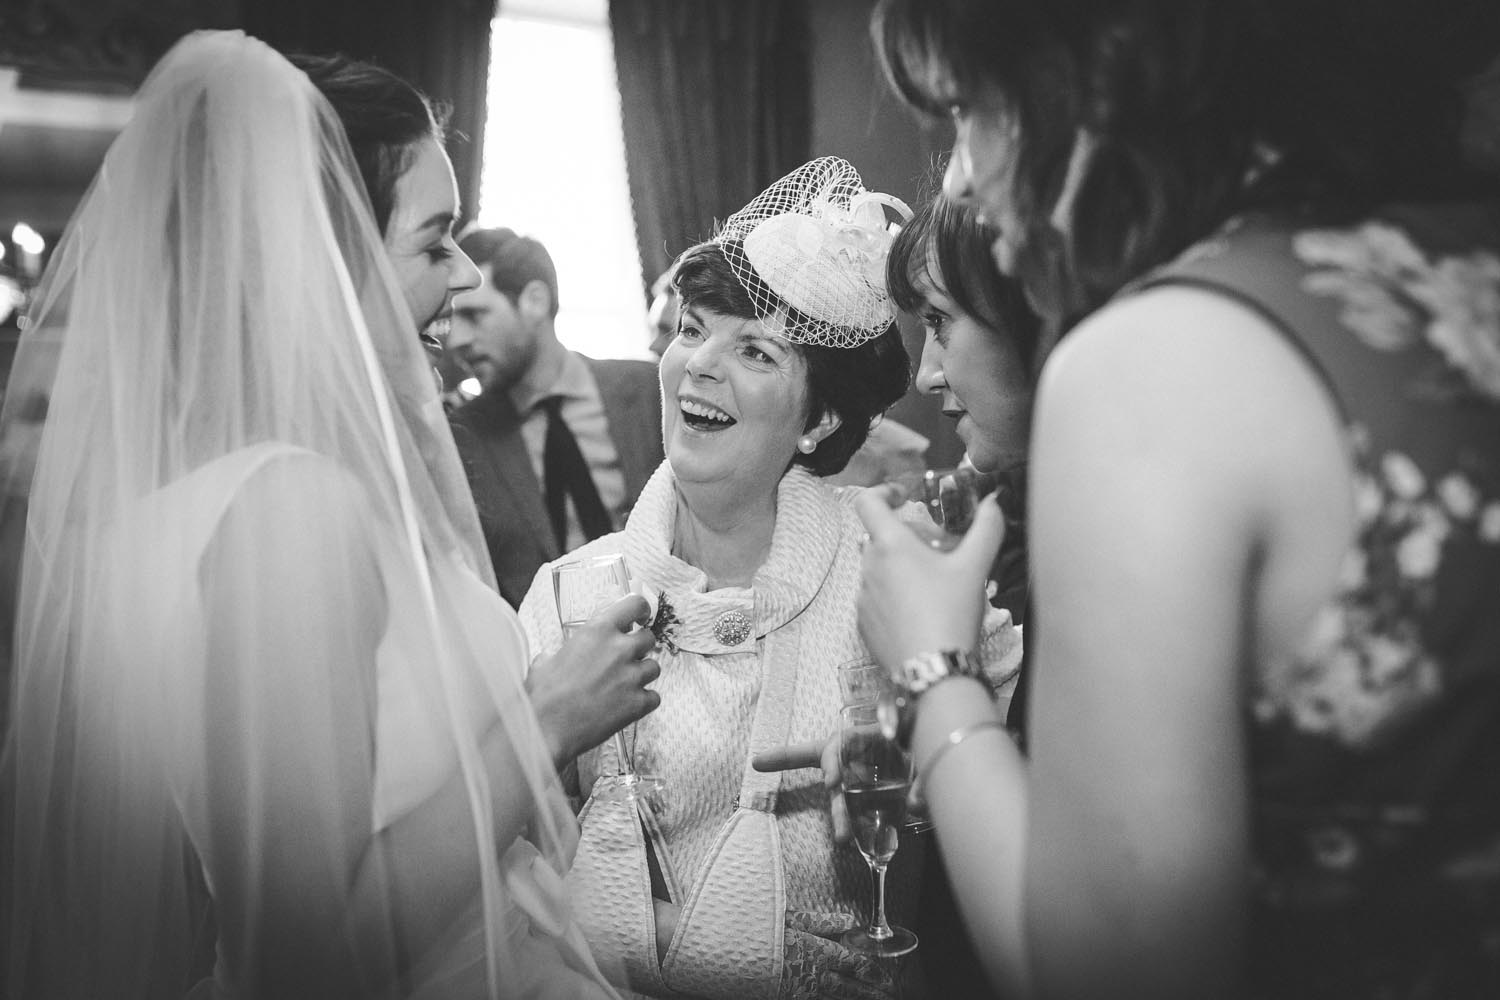 Step House wedding photographer Carlow Borris102.jpg